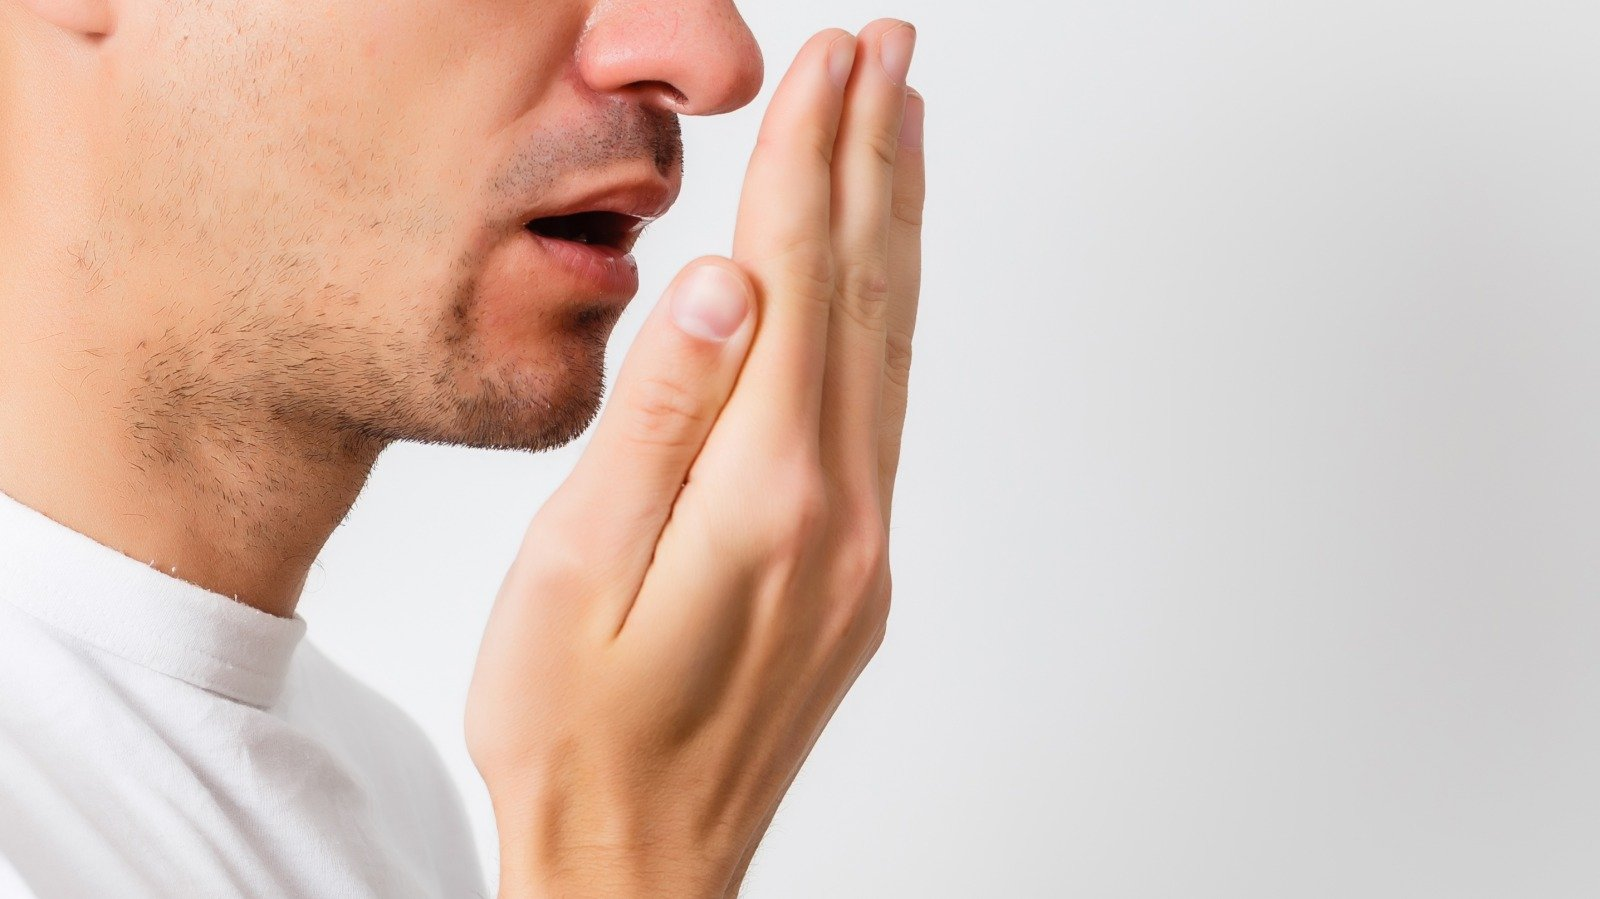 The Way Your Breath Smells Means More Than You Think